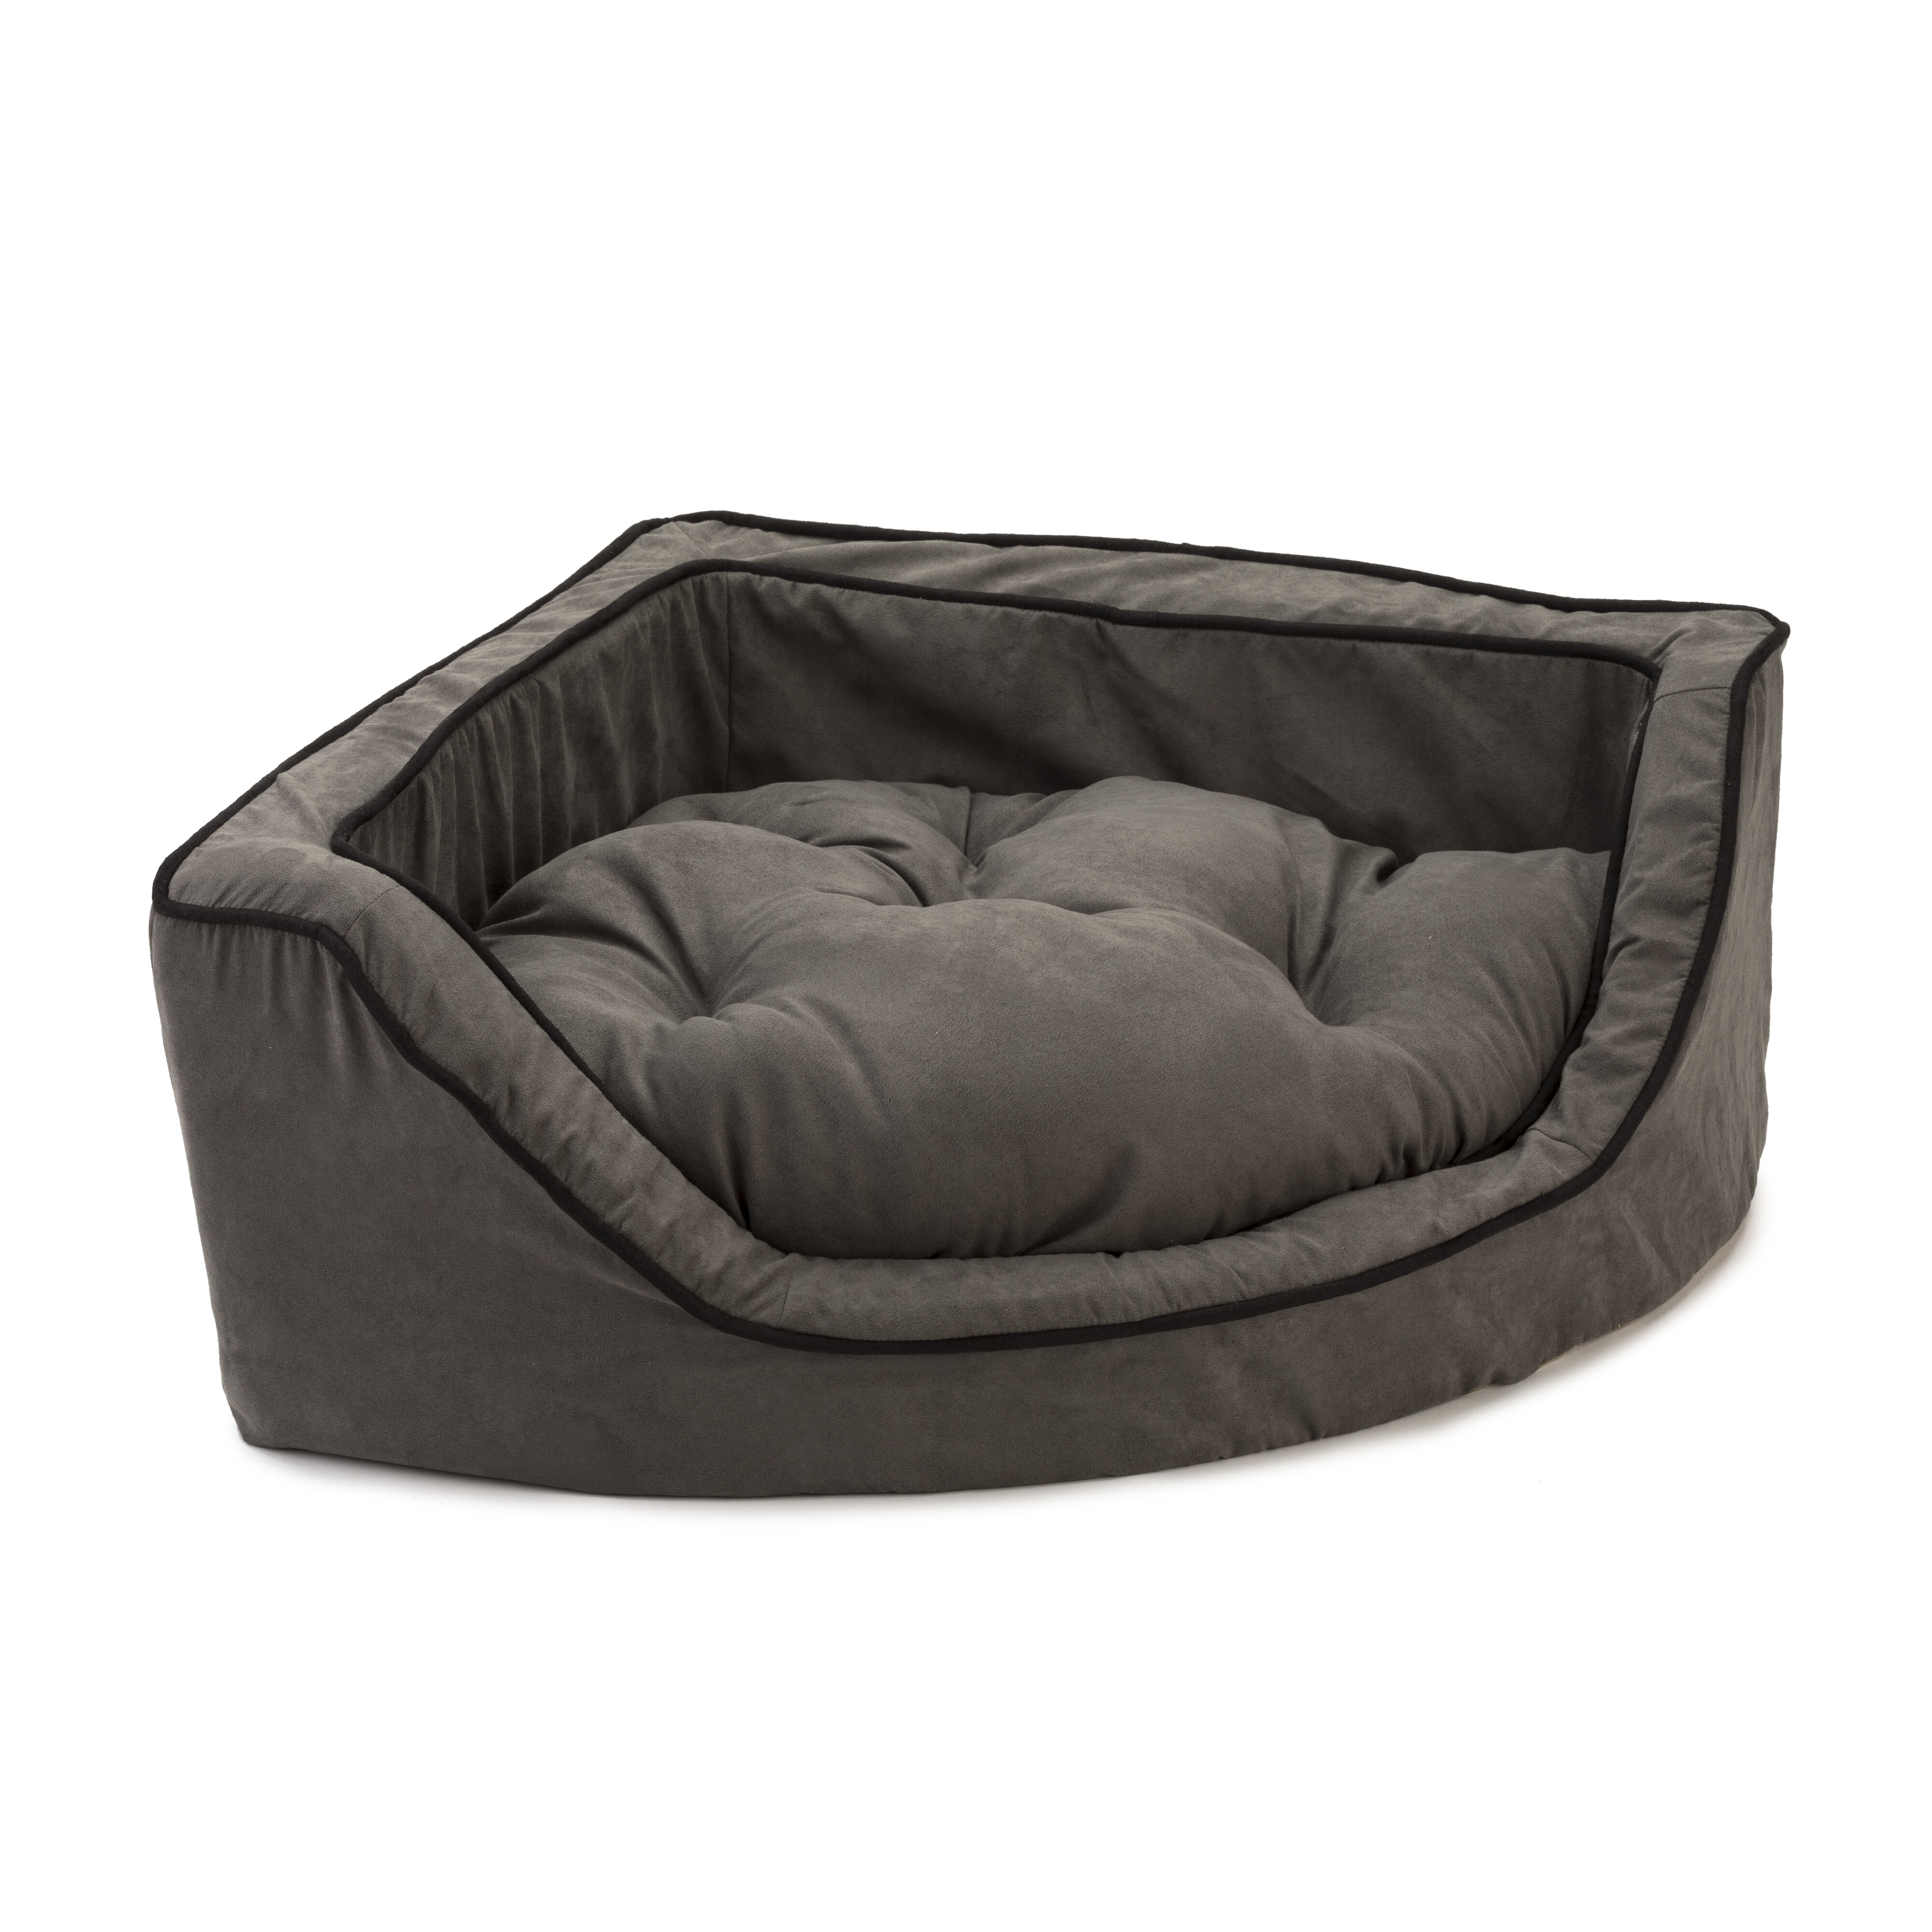 Wonderful Luxury Corner Bolster Dog Bed. By Snoozer Pet Products